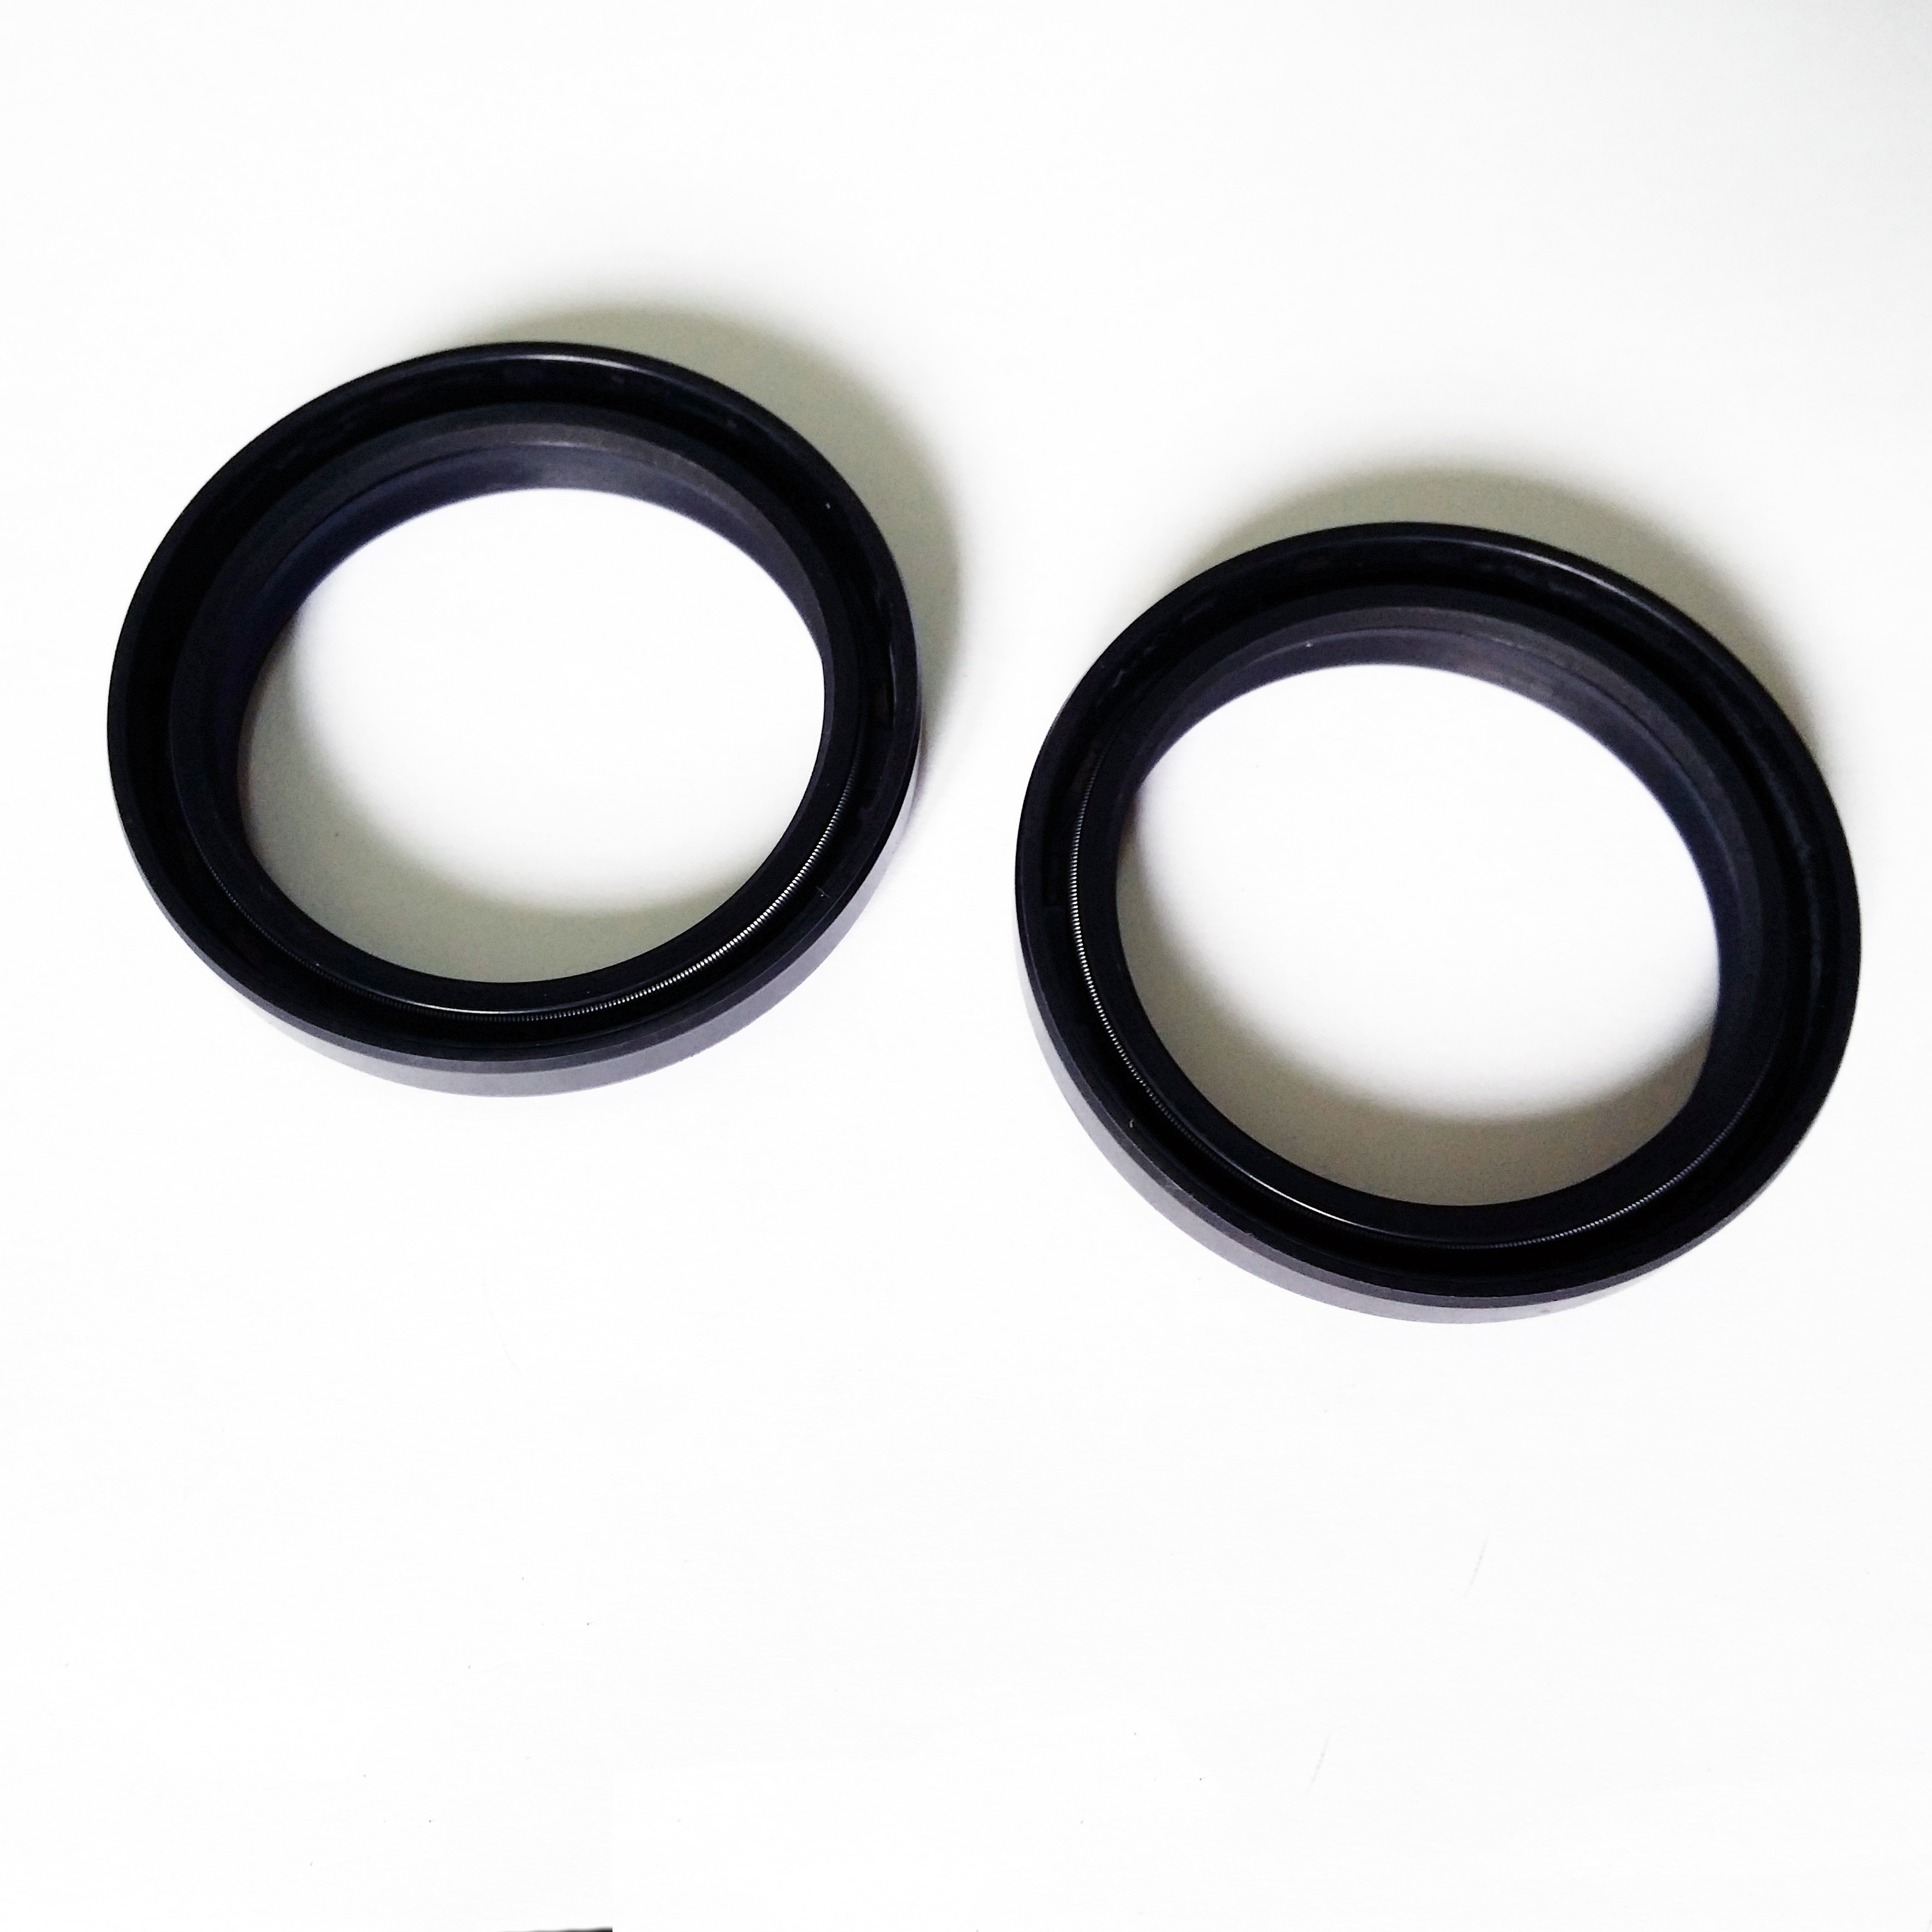 K-Tech Ducati 900SL 1992-1995 NOK Front Fork Oil Seals 41x54x11mm